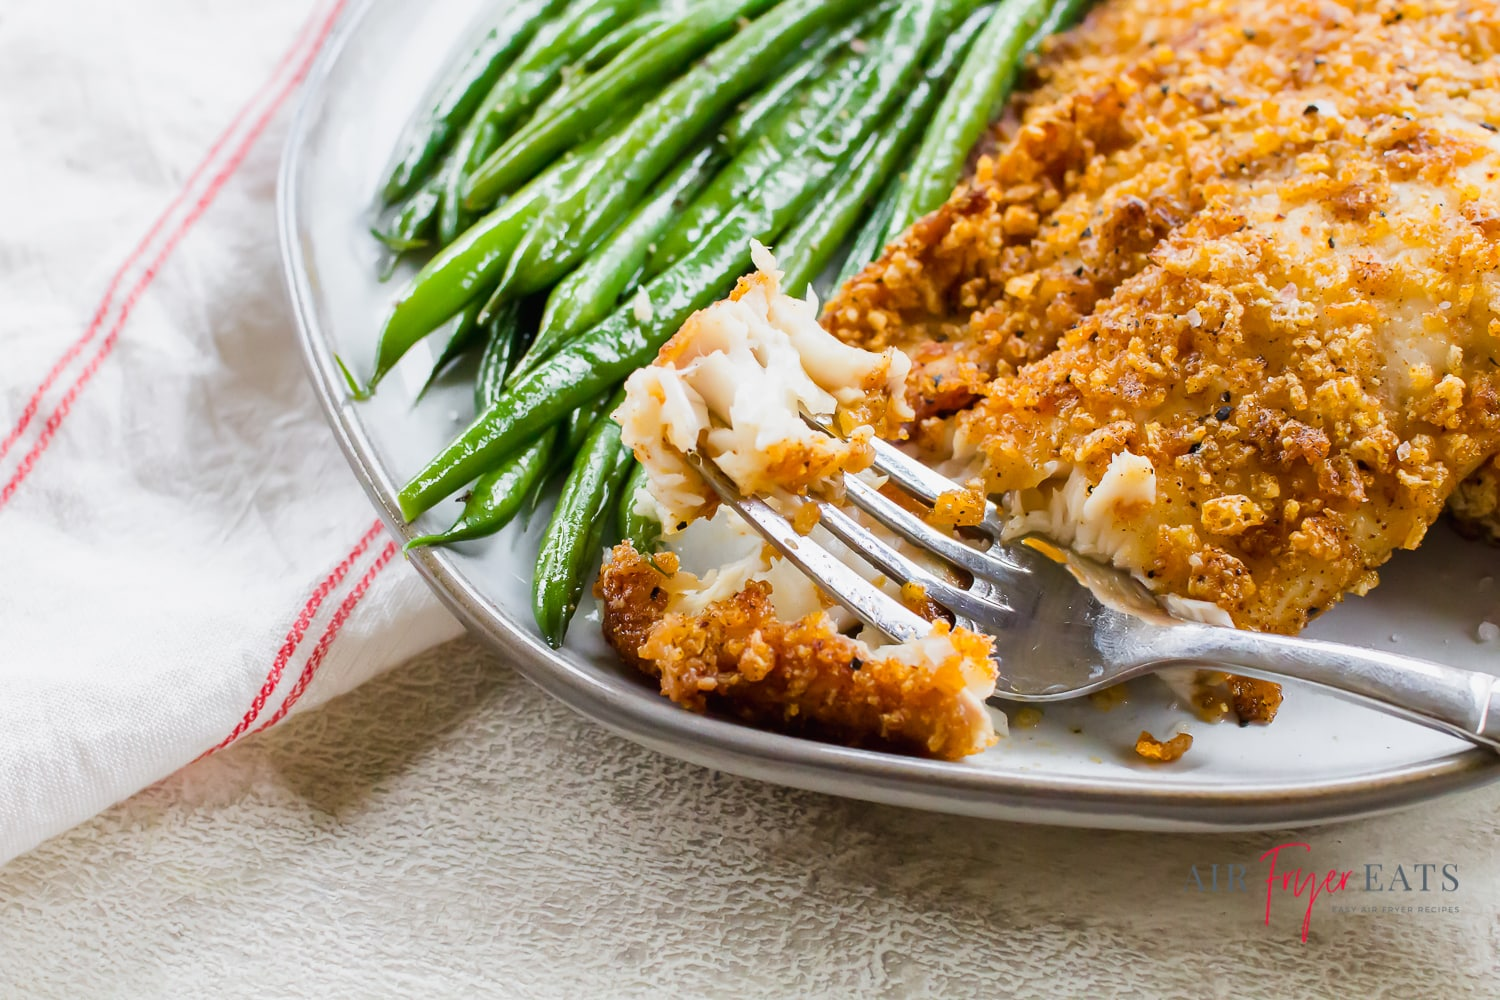 Close-up shot of flaky white fish on a fork with a breadcrumb crust next to green beans